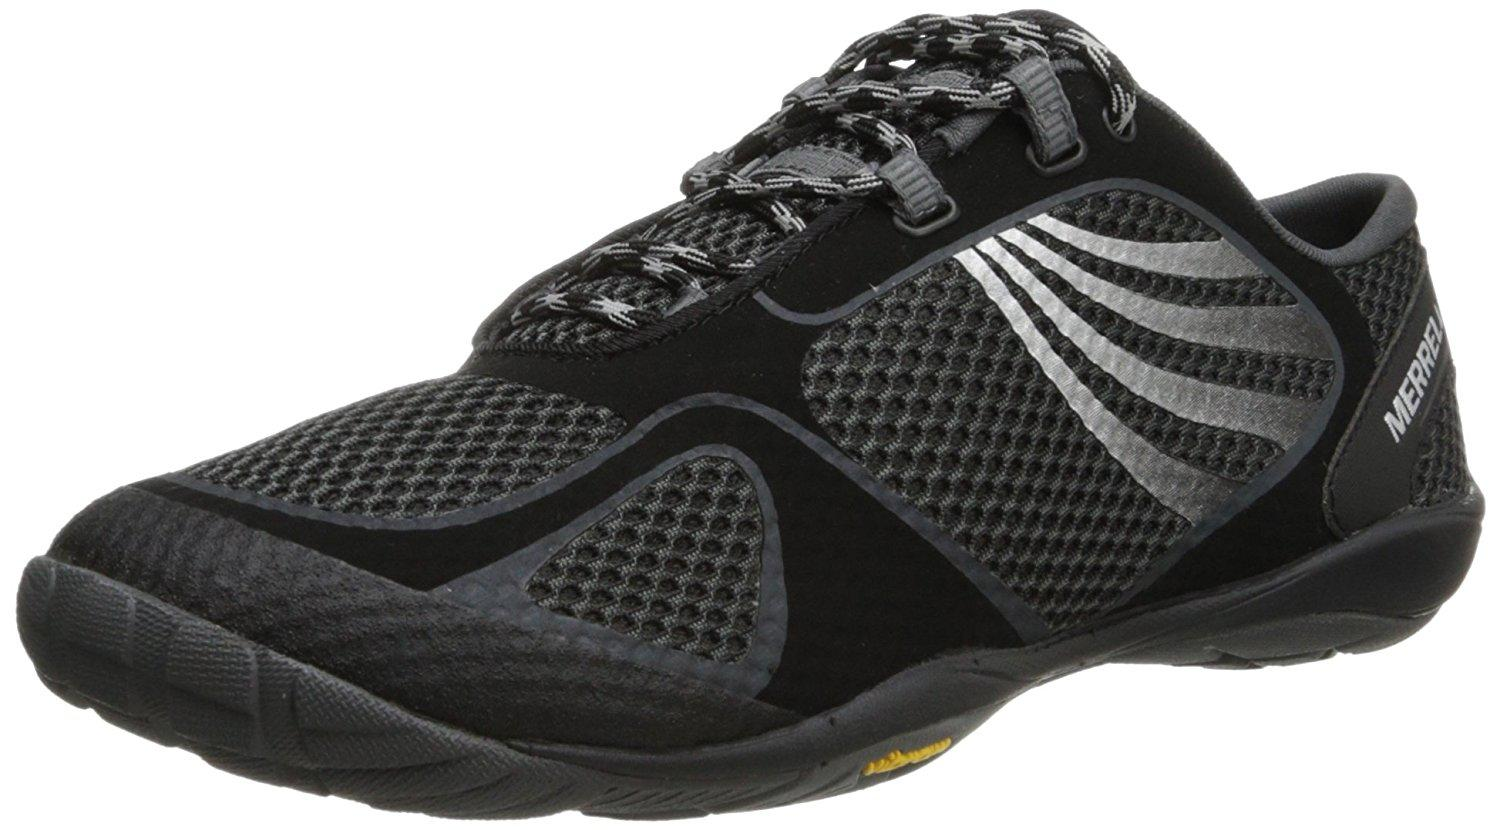 Black gloves races - An In Depth Review Of The Merrell Pace Glove 2